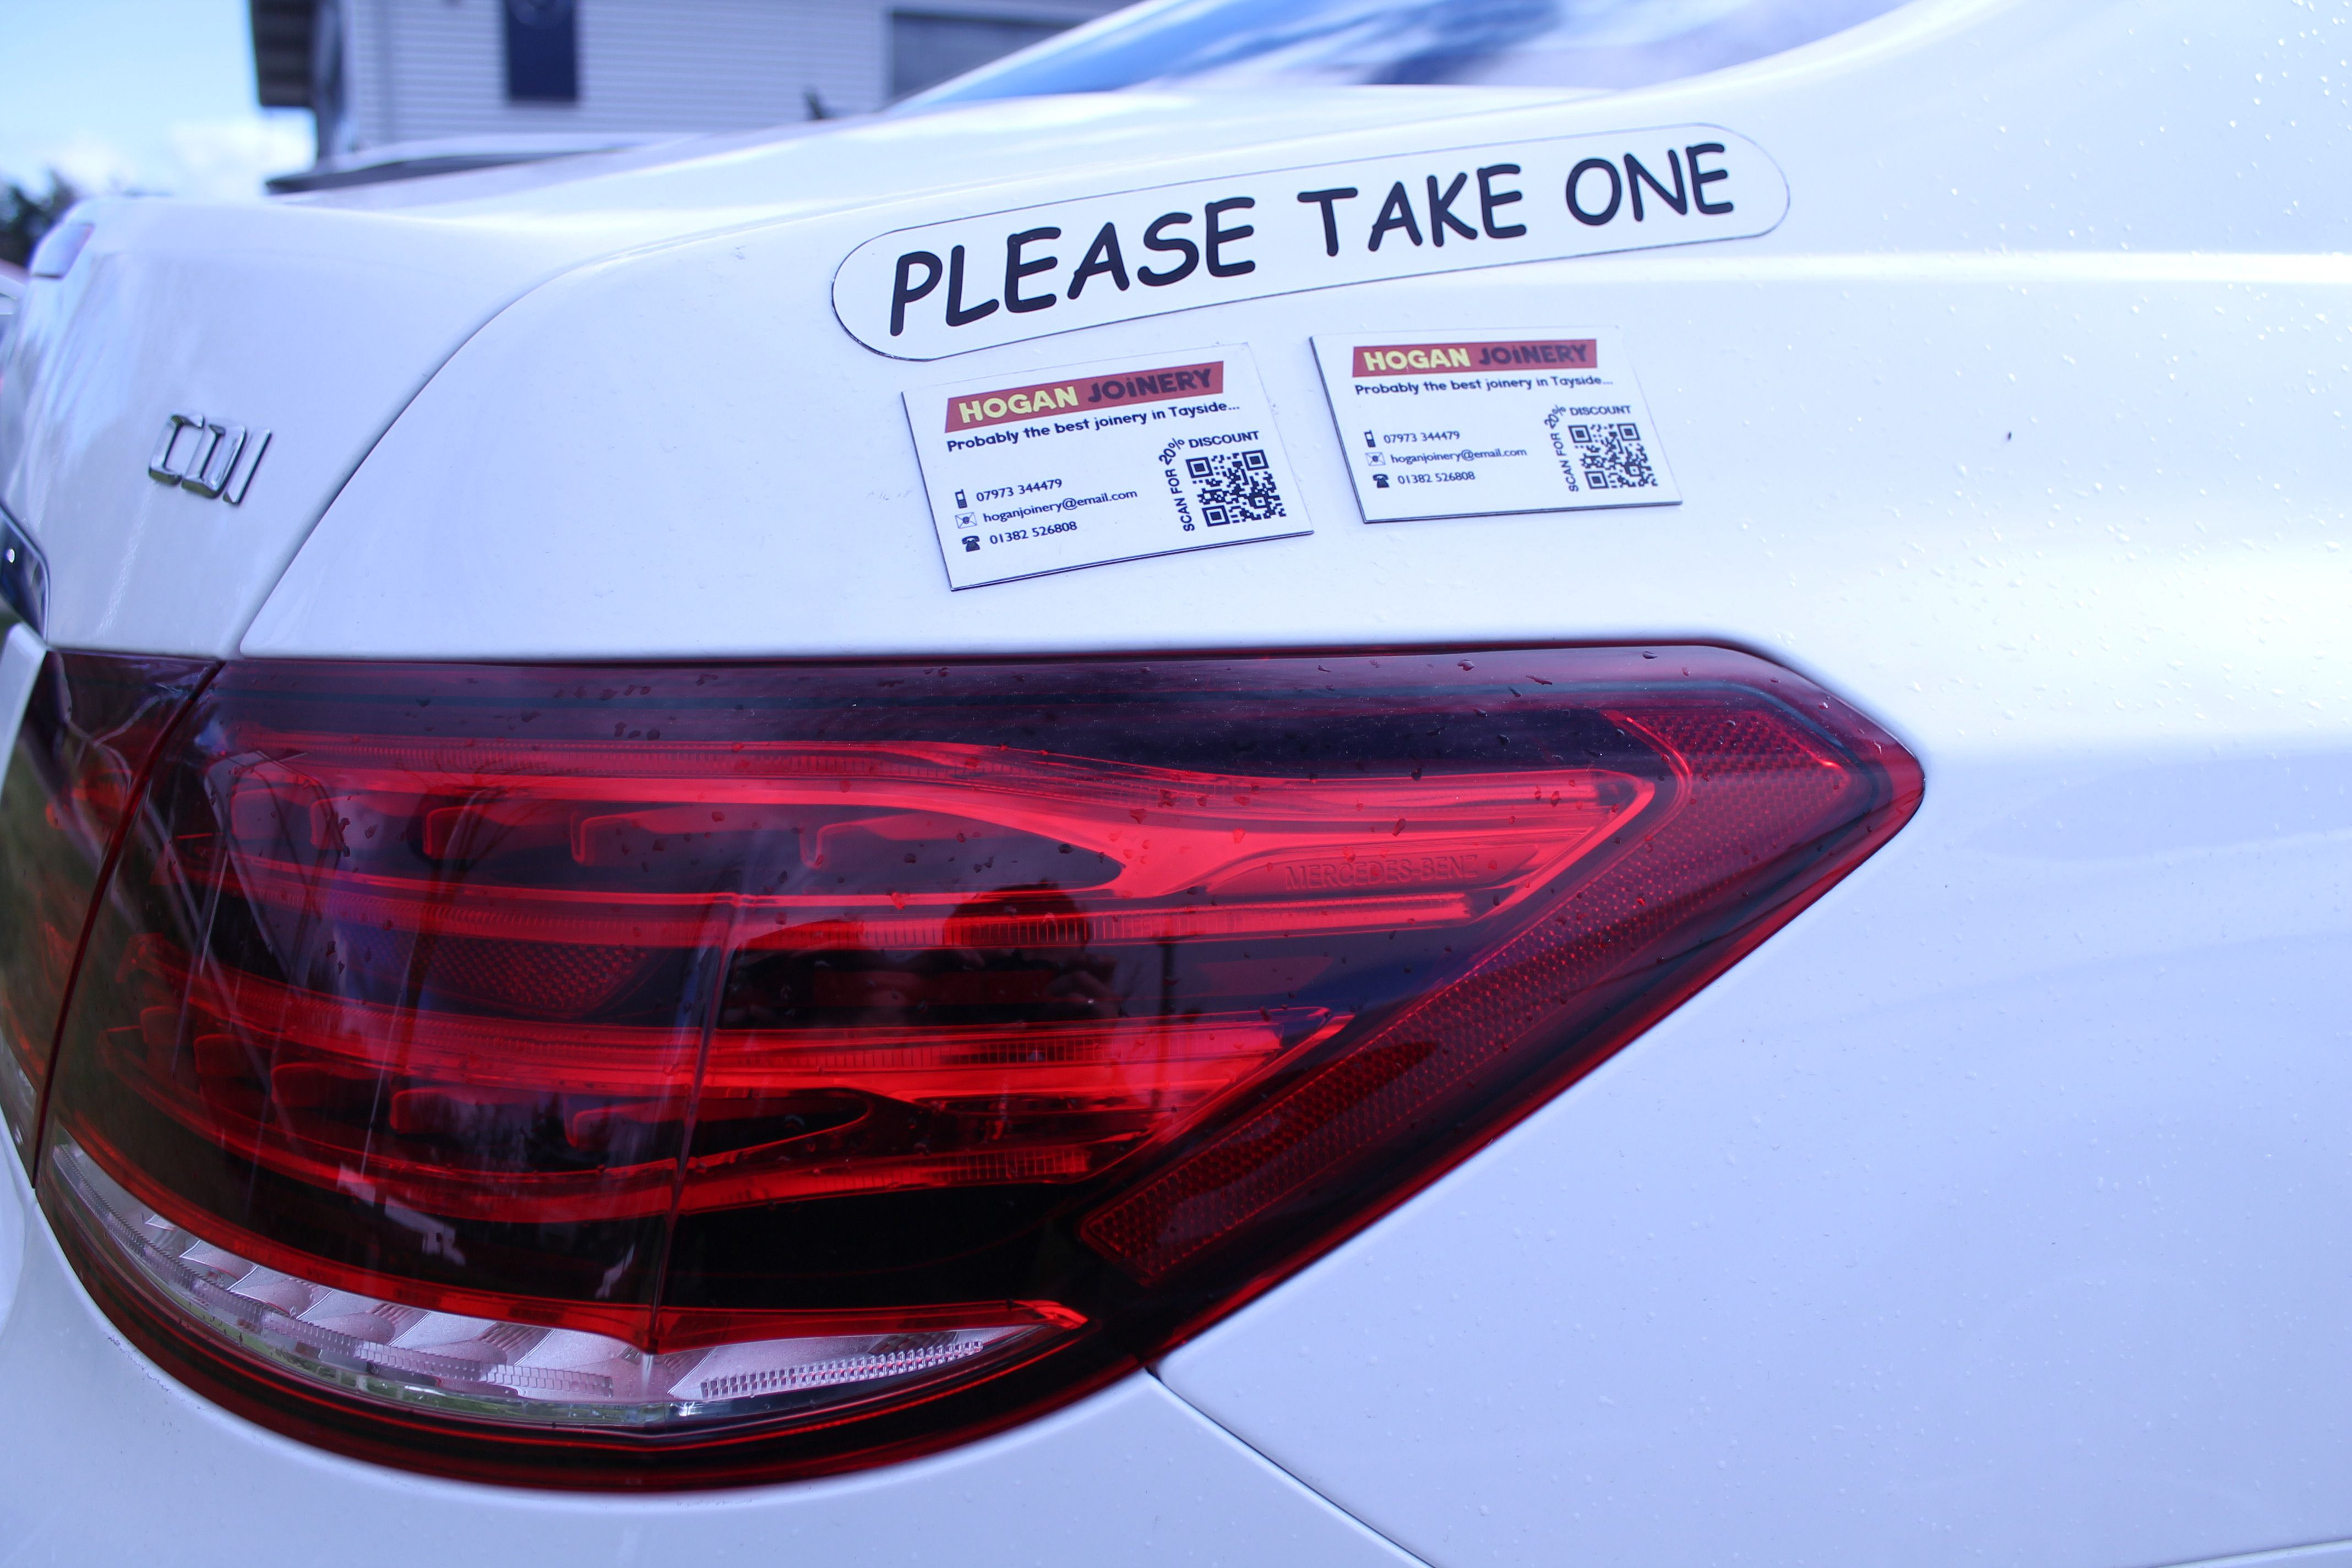 Advertise your business on your VW Polo with a Please Take e